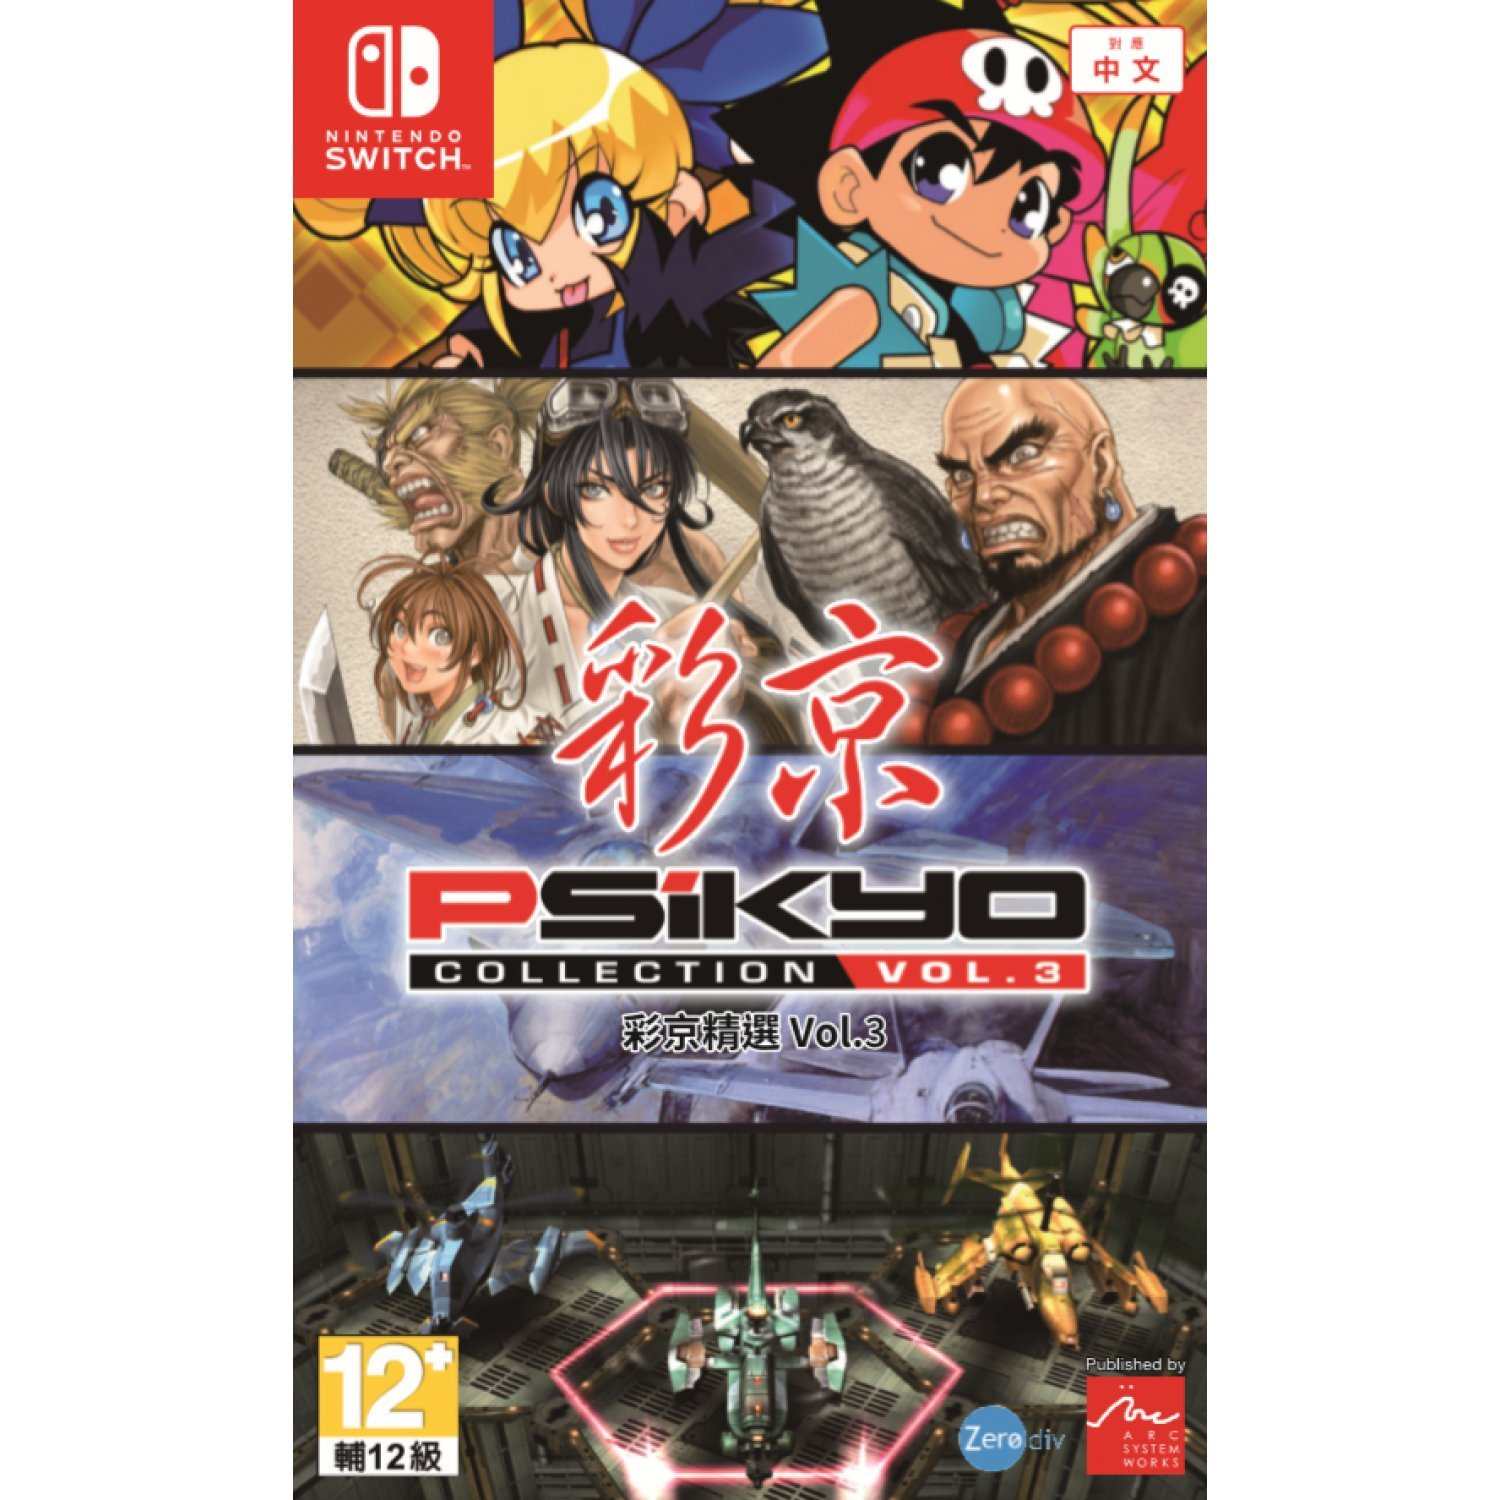 [2019-05-30] Psikyo Collection Vol. 3 Switch Psikyo-collection-vol-3-multilanguage-577721.24